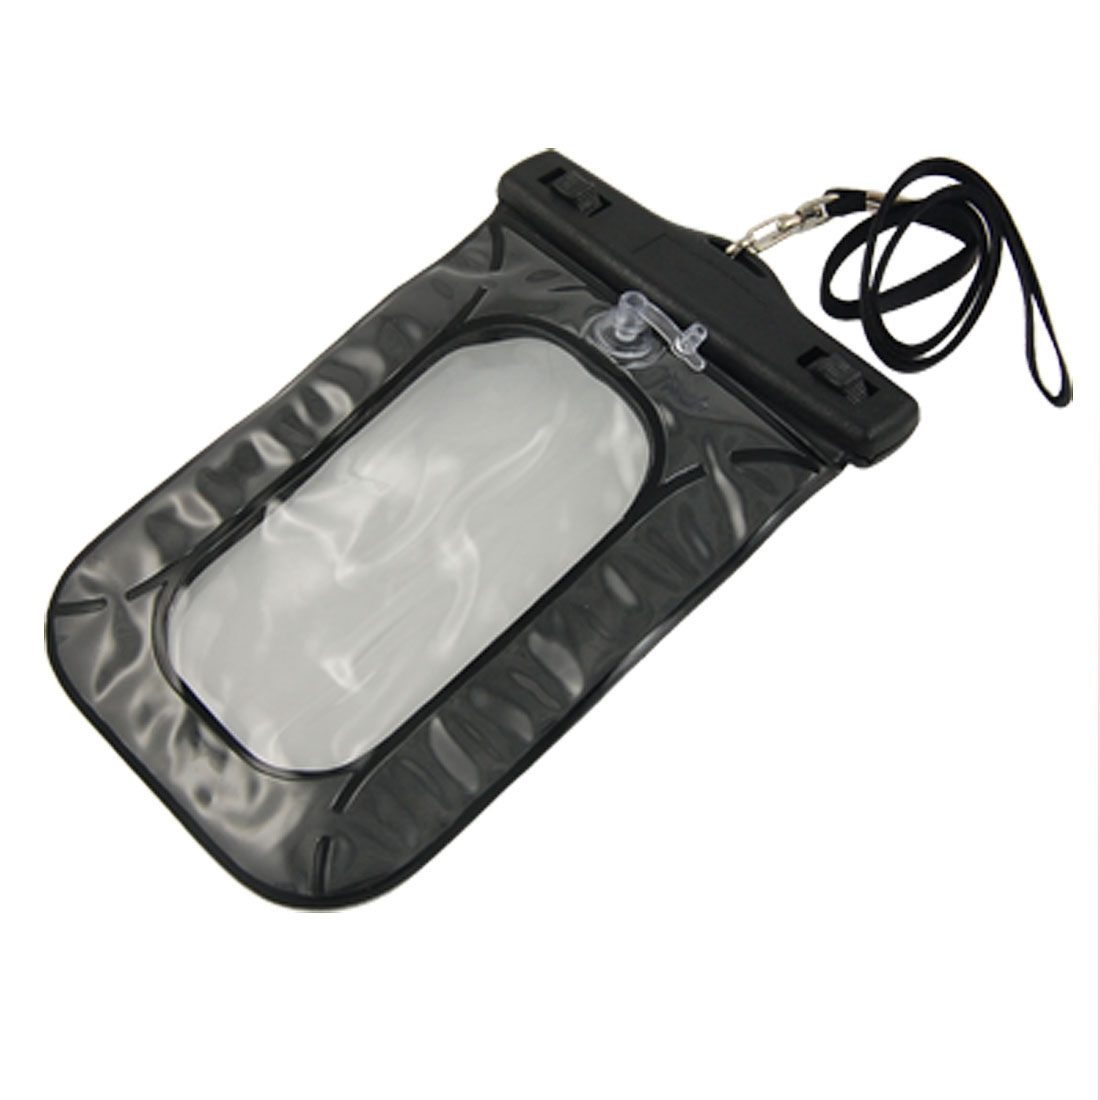 Cell Phone PDA Water Resistant Bag Pouch Black w Strap